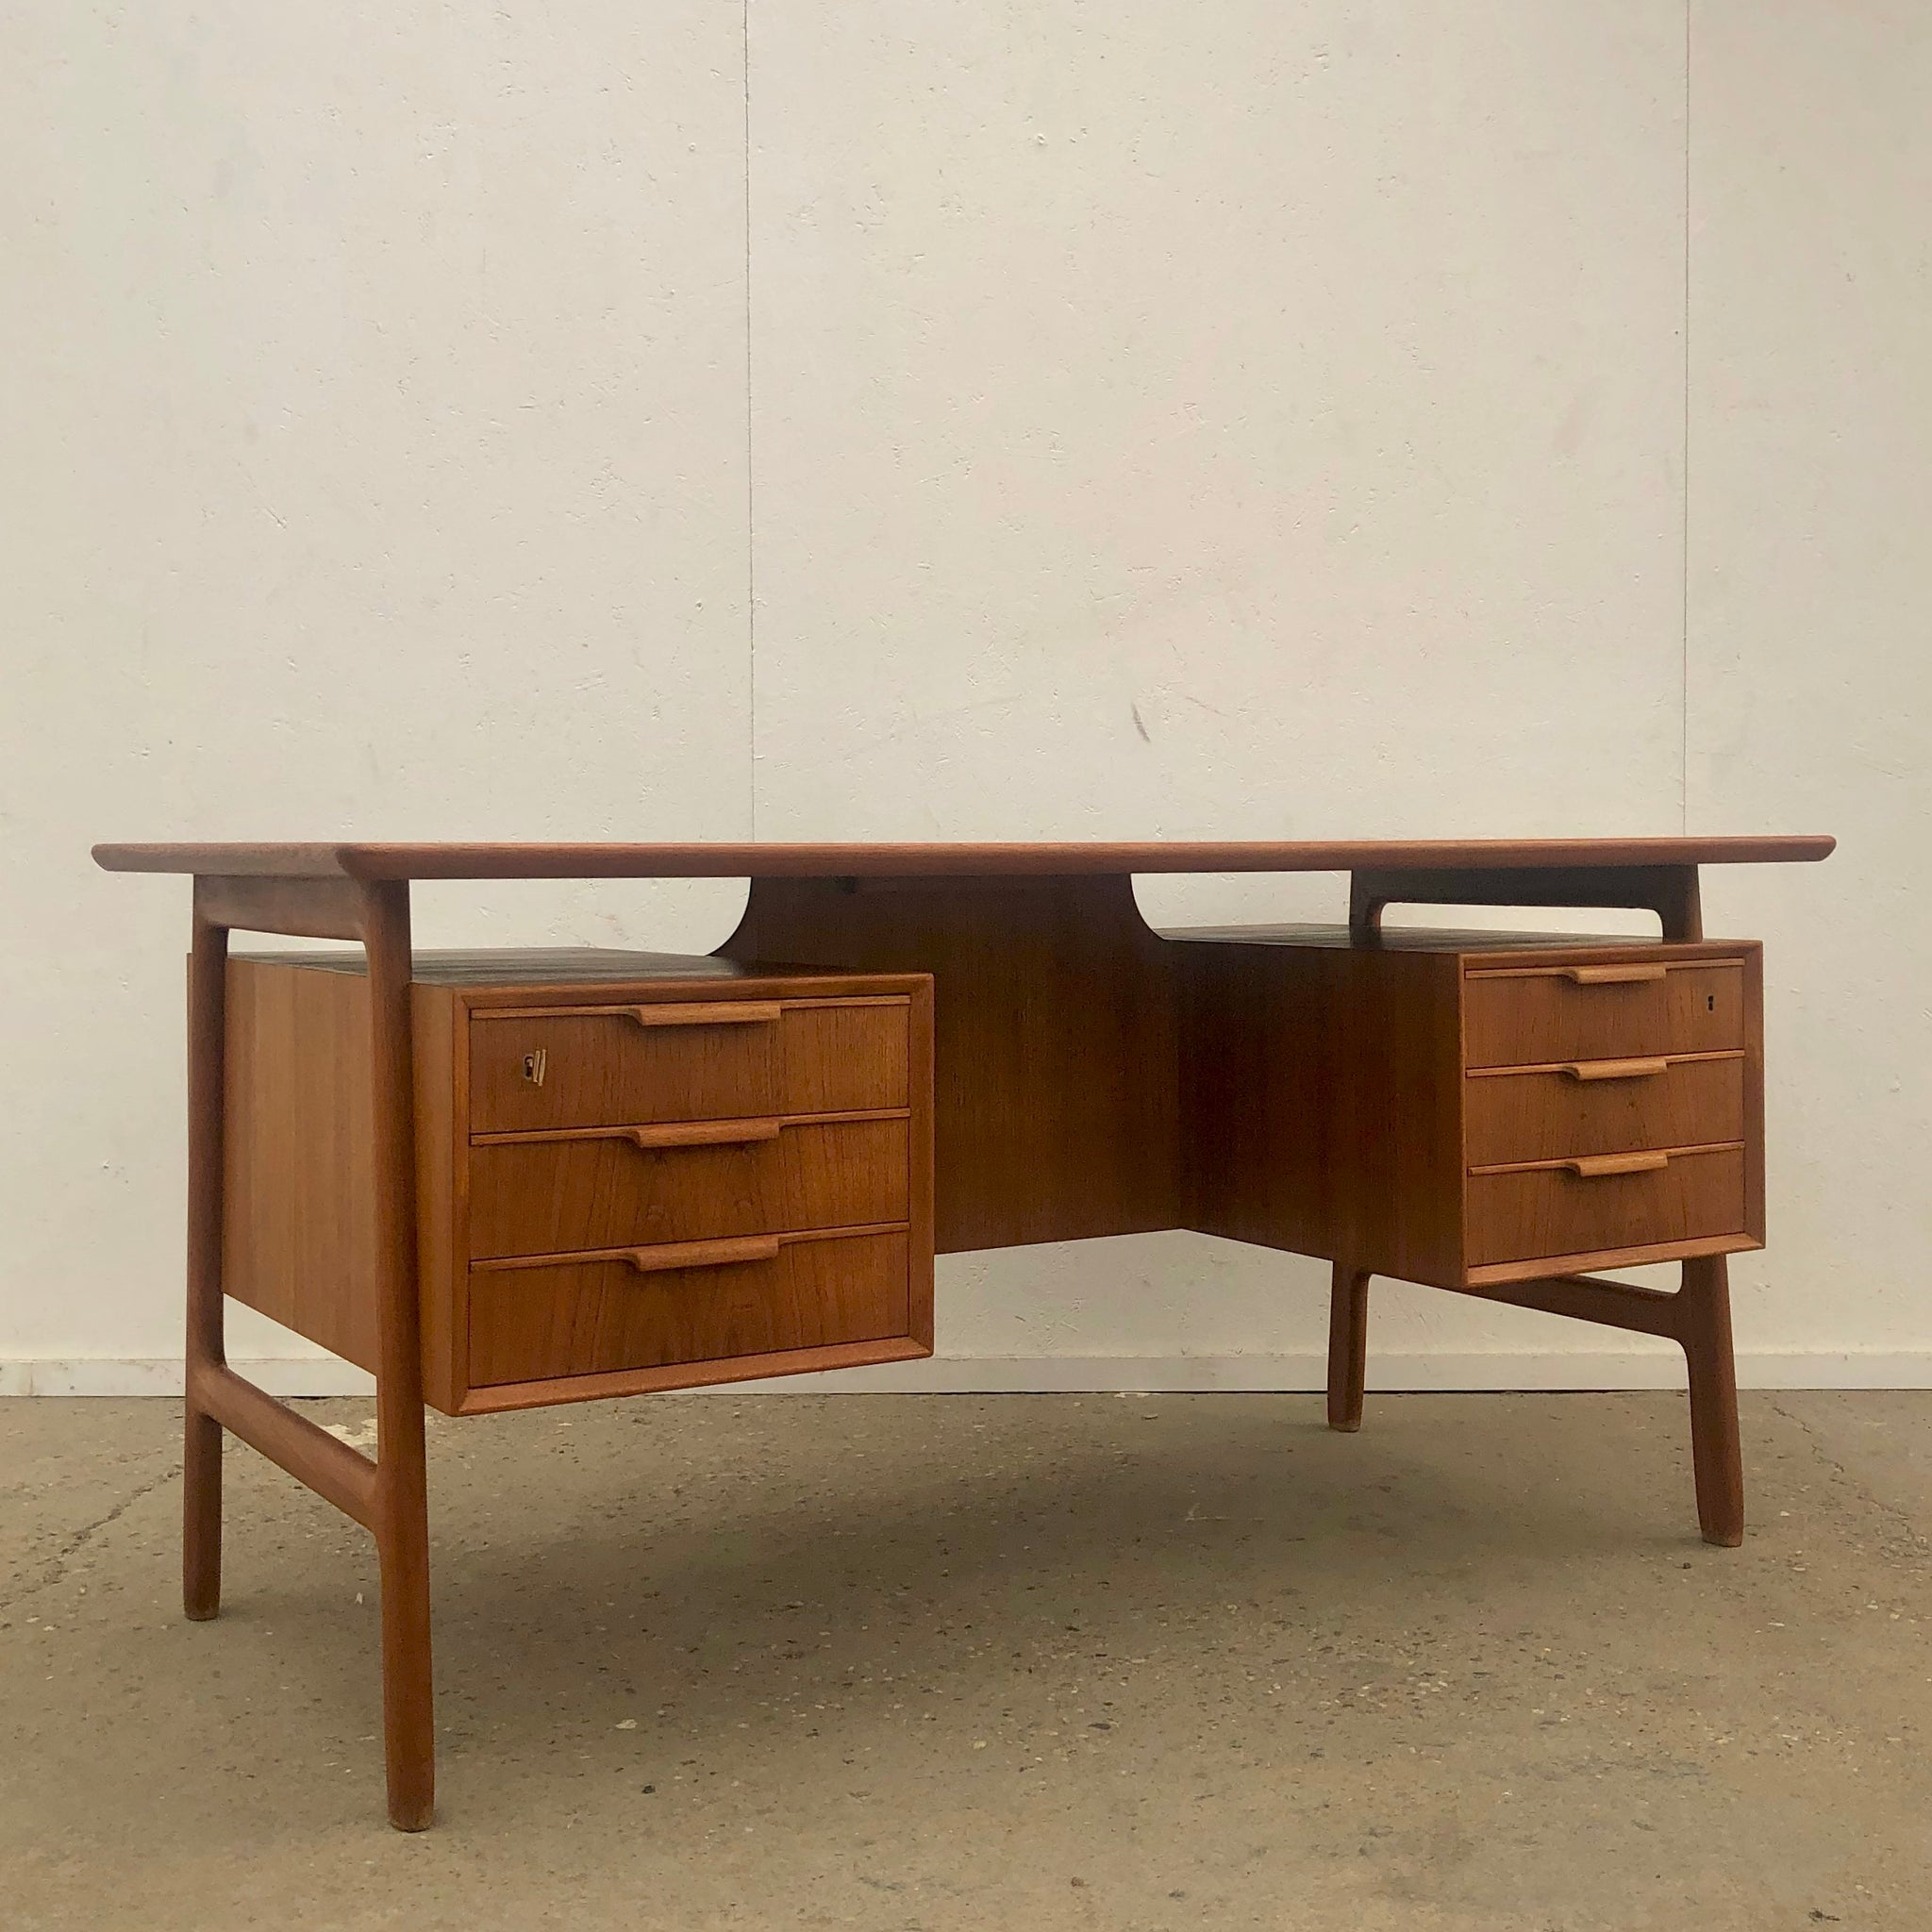 Danish desk by Gunni Omann for Omann Jun Møbelfabrik, 1960s